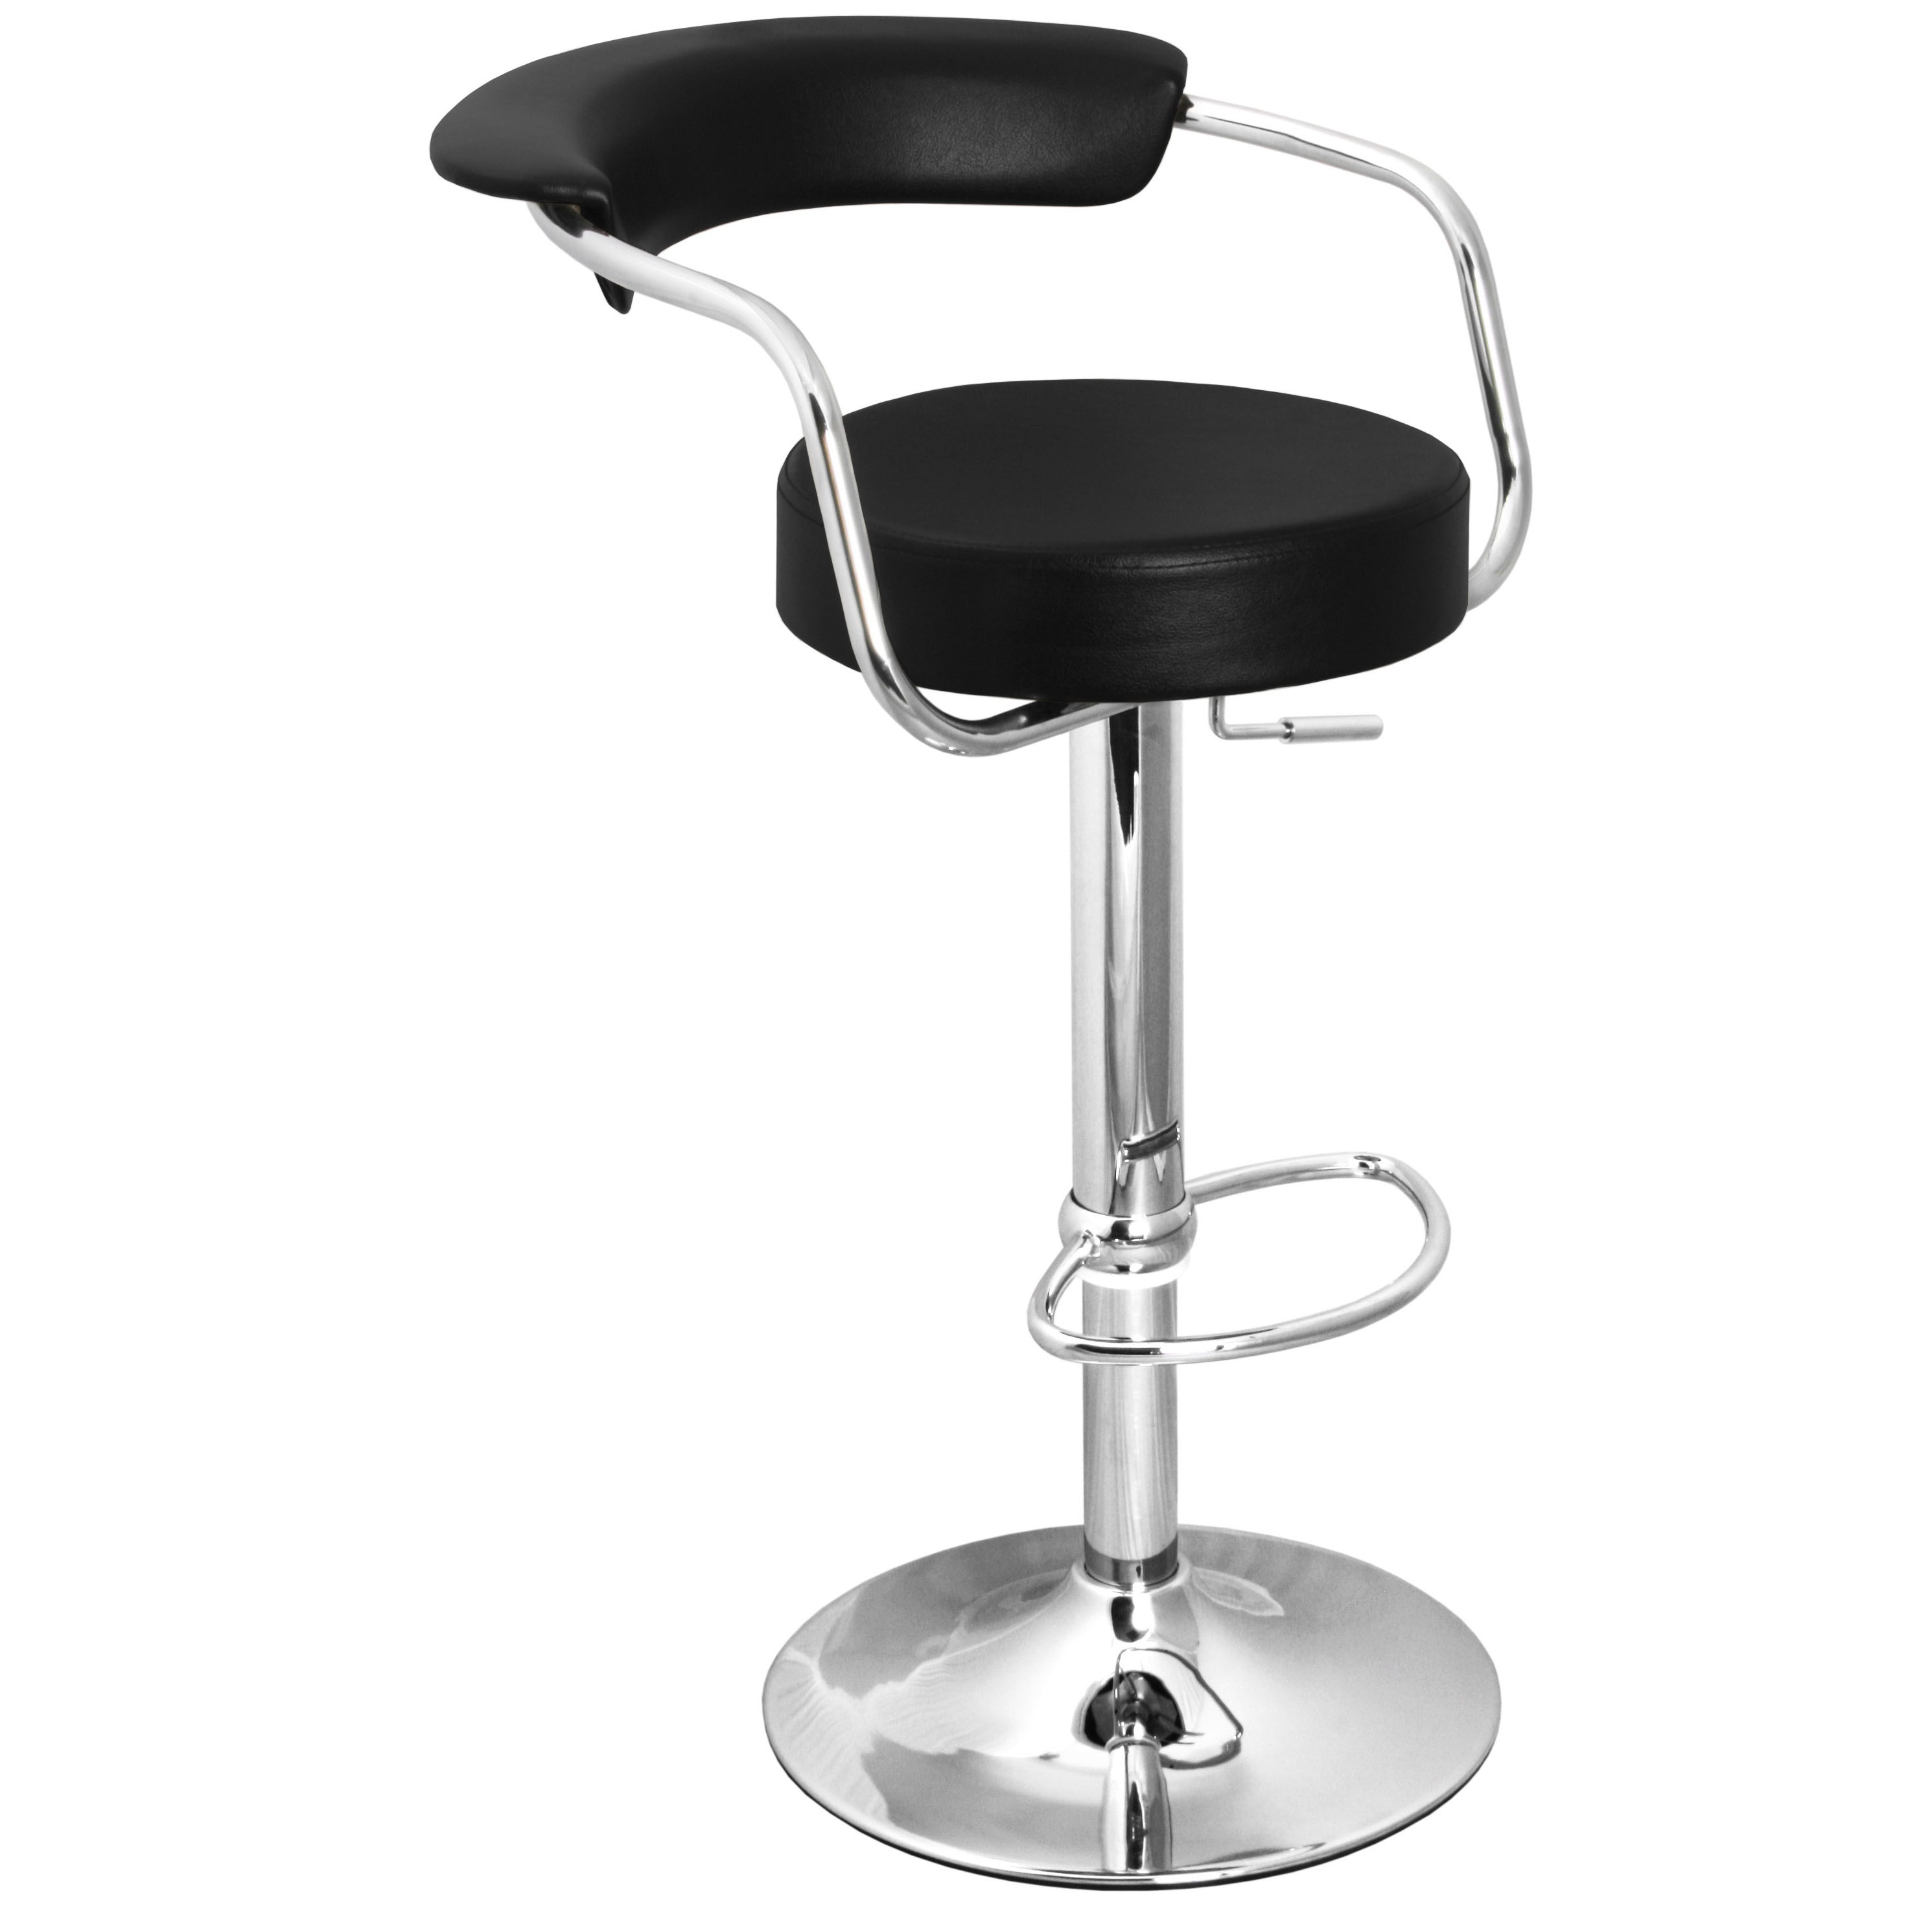 Zenith Bar Stool with Arms - Black